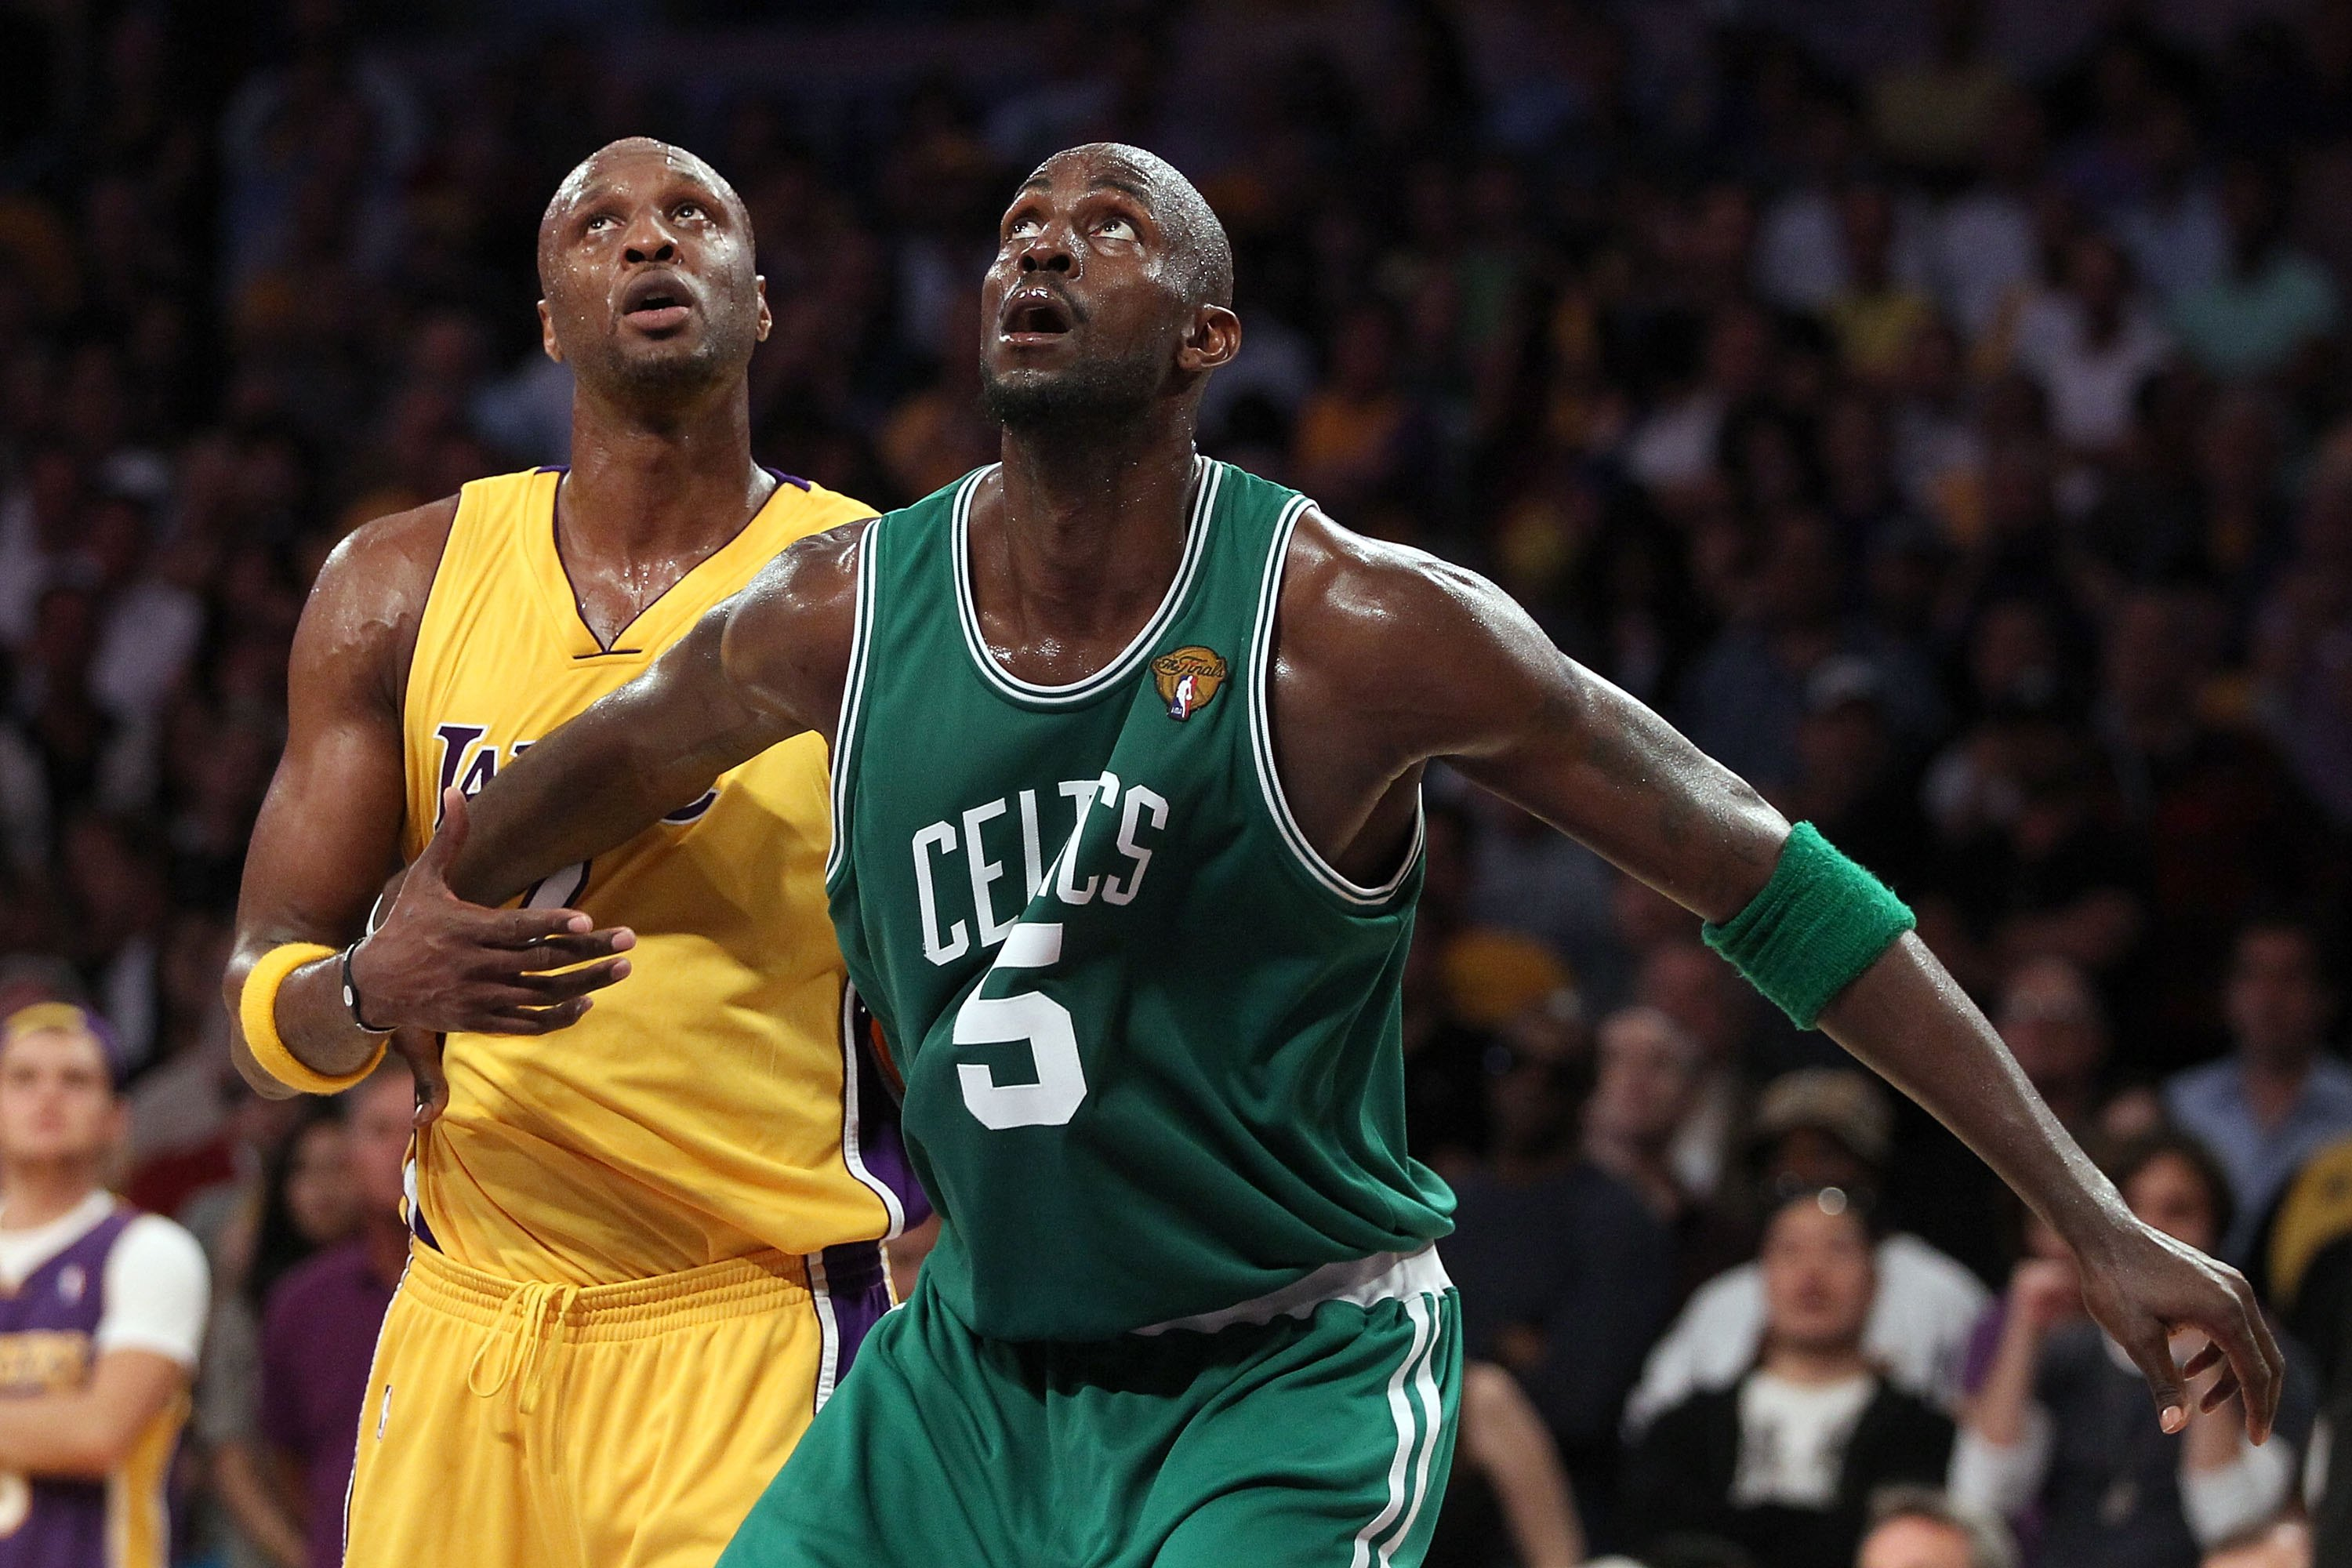 LOS ANGELES, CA - JUNE 17:  Kevin Garnett #5 of the Boston Celtics boxes out Lamar Odom #7 of the Los Angeles Lakers in Game Seven of the 2010 NBA Finals at Staples Center on June 17, 2010 in Los Angeles, California.  NOTE TO USER: User expressly acknowle